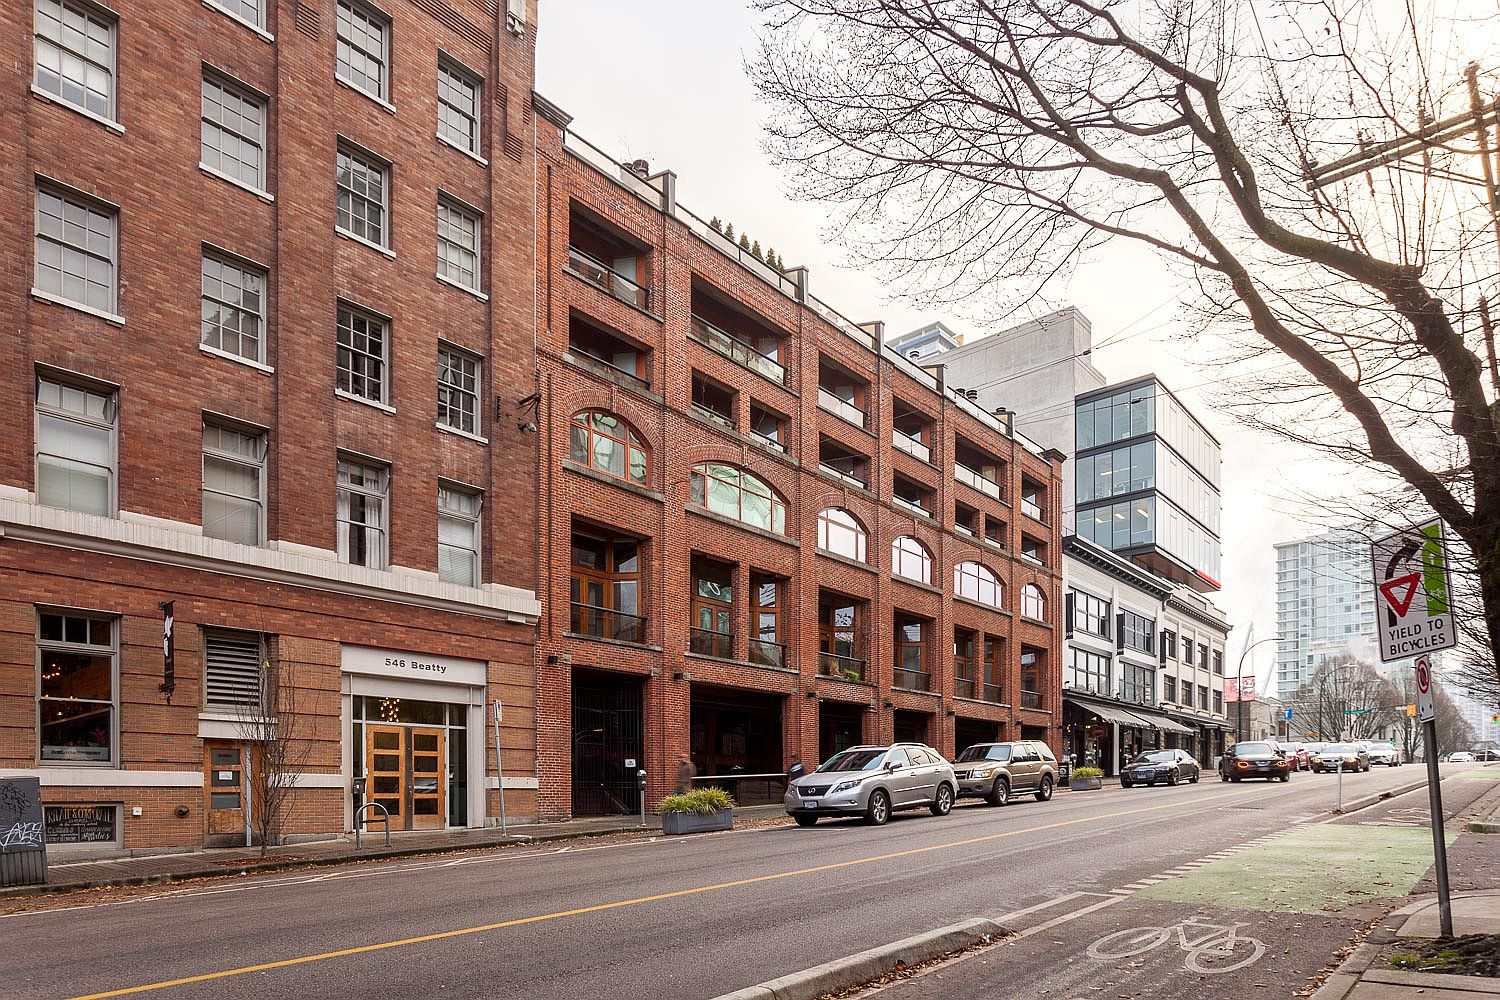 Exterior of the original Crane Lofts building turned into modern residential structure